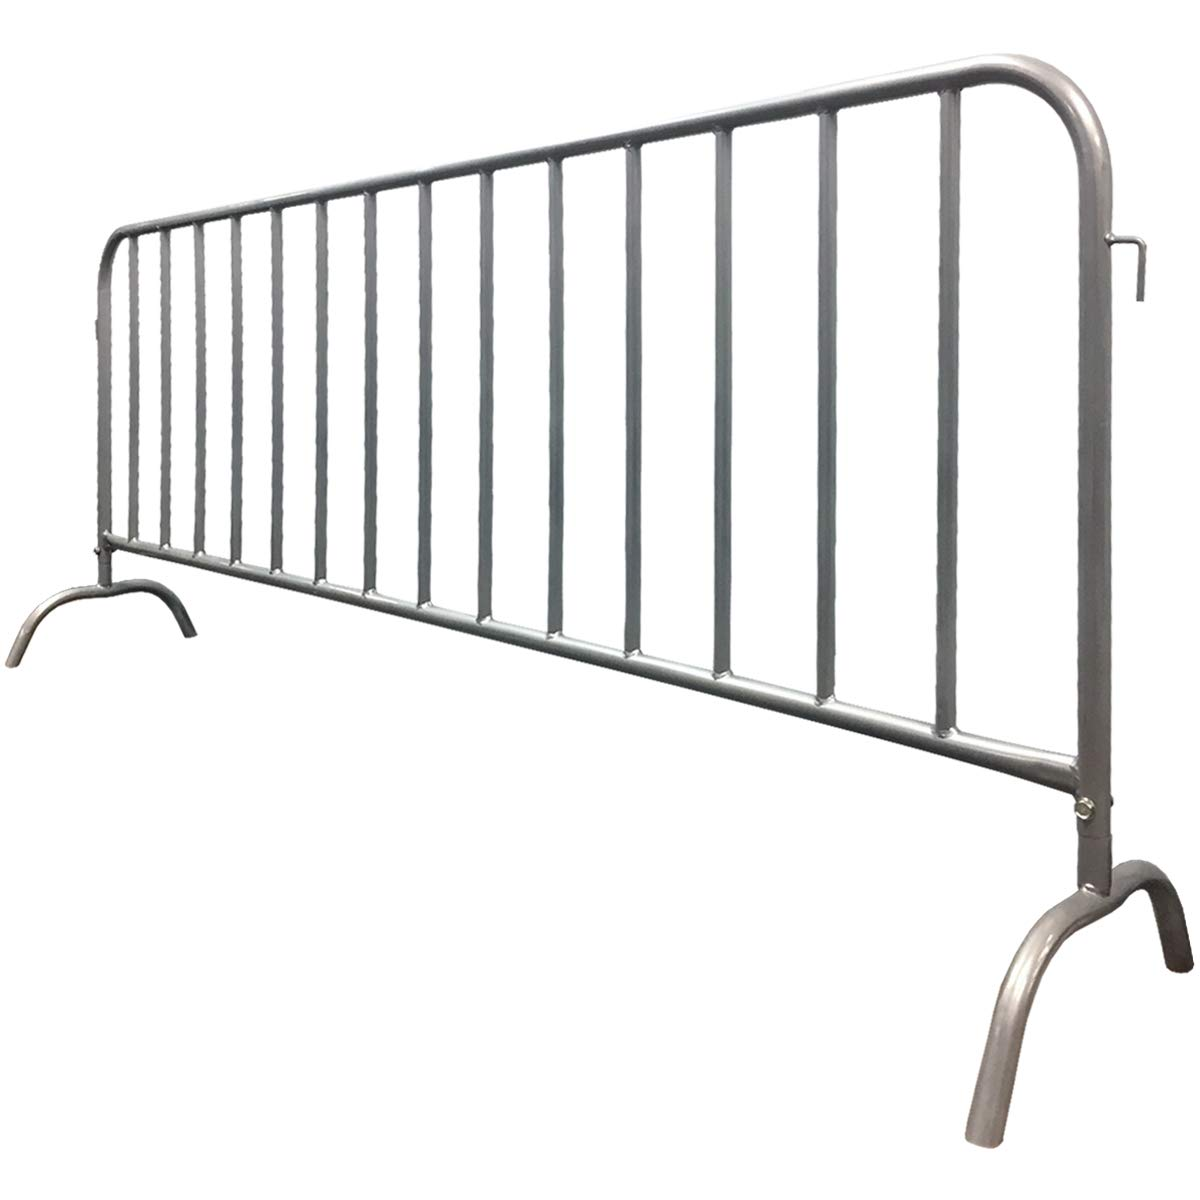 Electriduct 8.5 Feet Heavy Duty Steel Barrier Interlocking Crowd Control Barricade with Galvanized Finish (Pack of 10 Barricades) by Electriduct (Image #4)